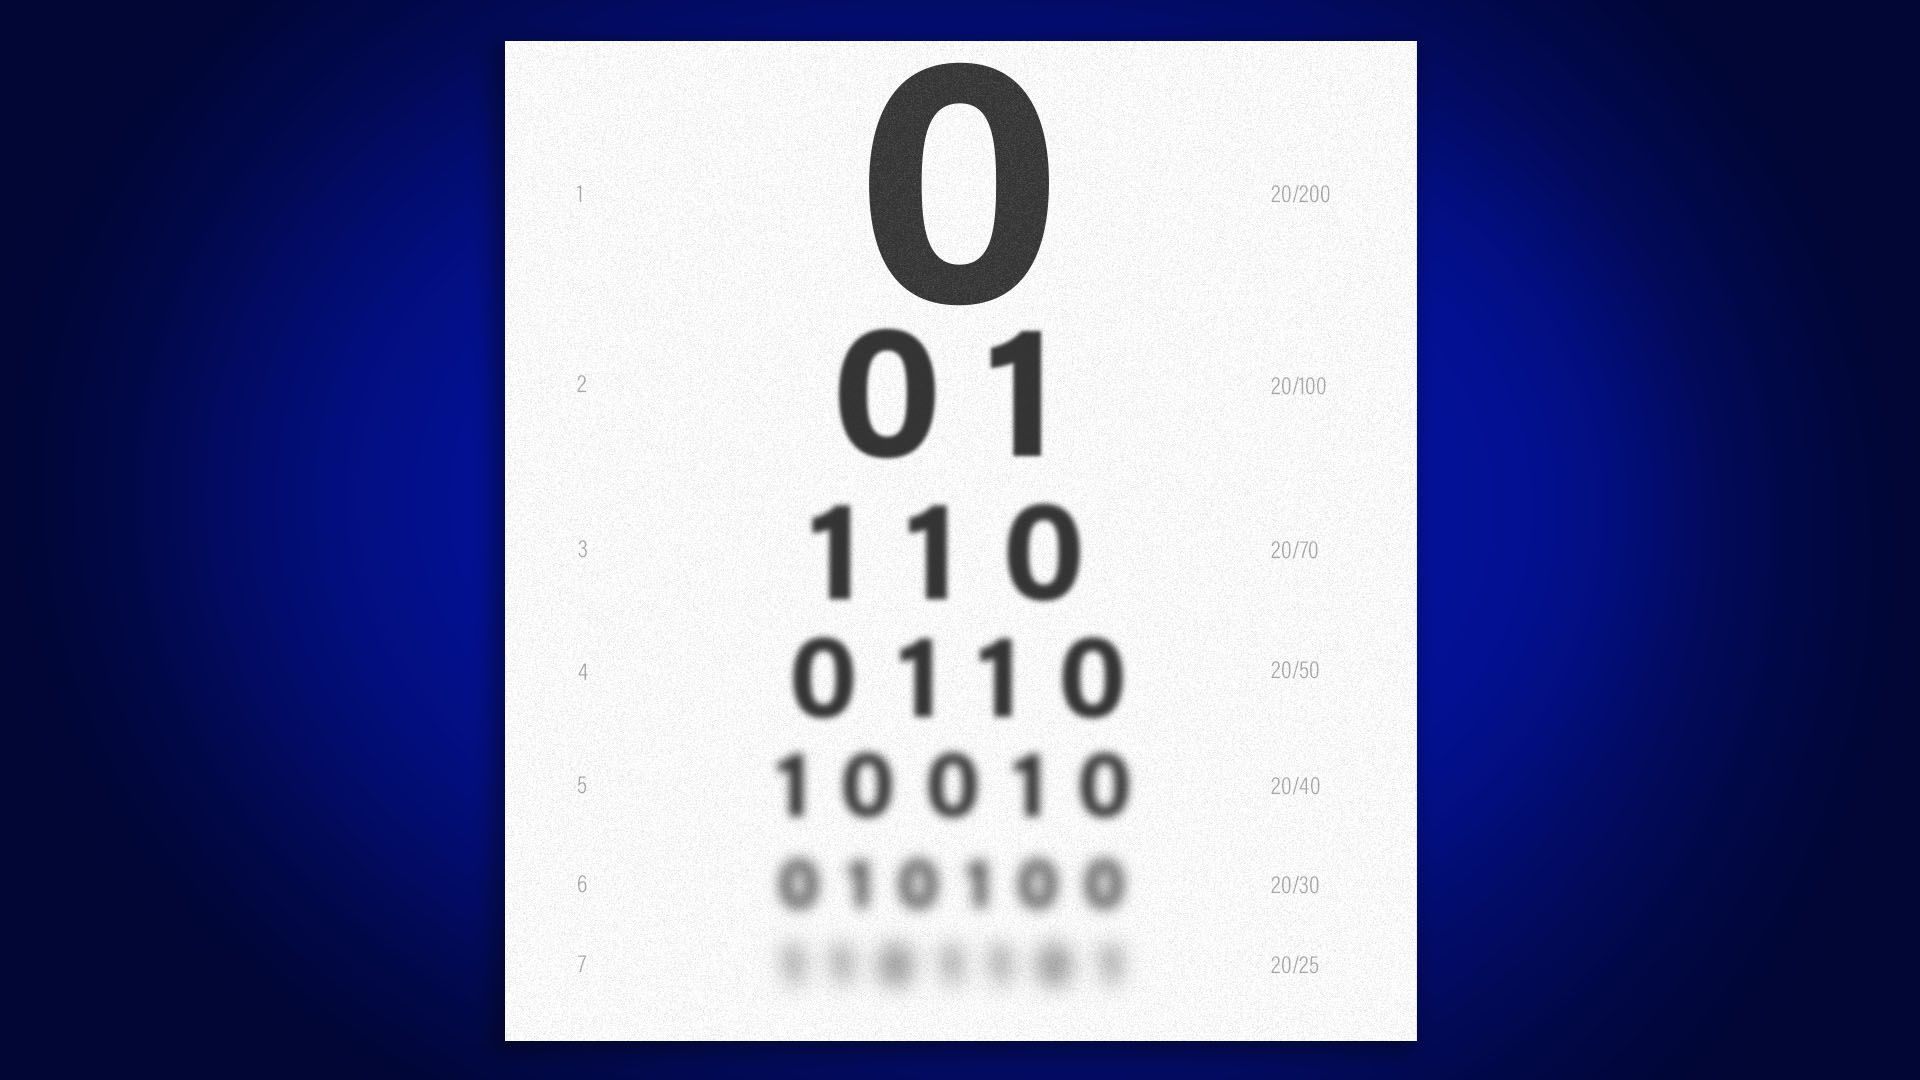 Illustration of an eye chart made up of ones and zeros